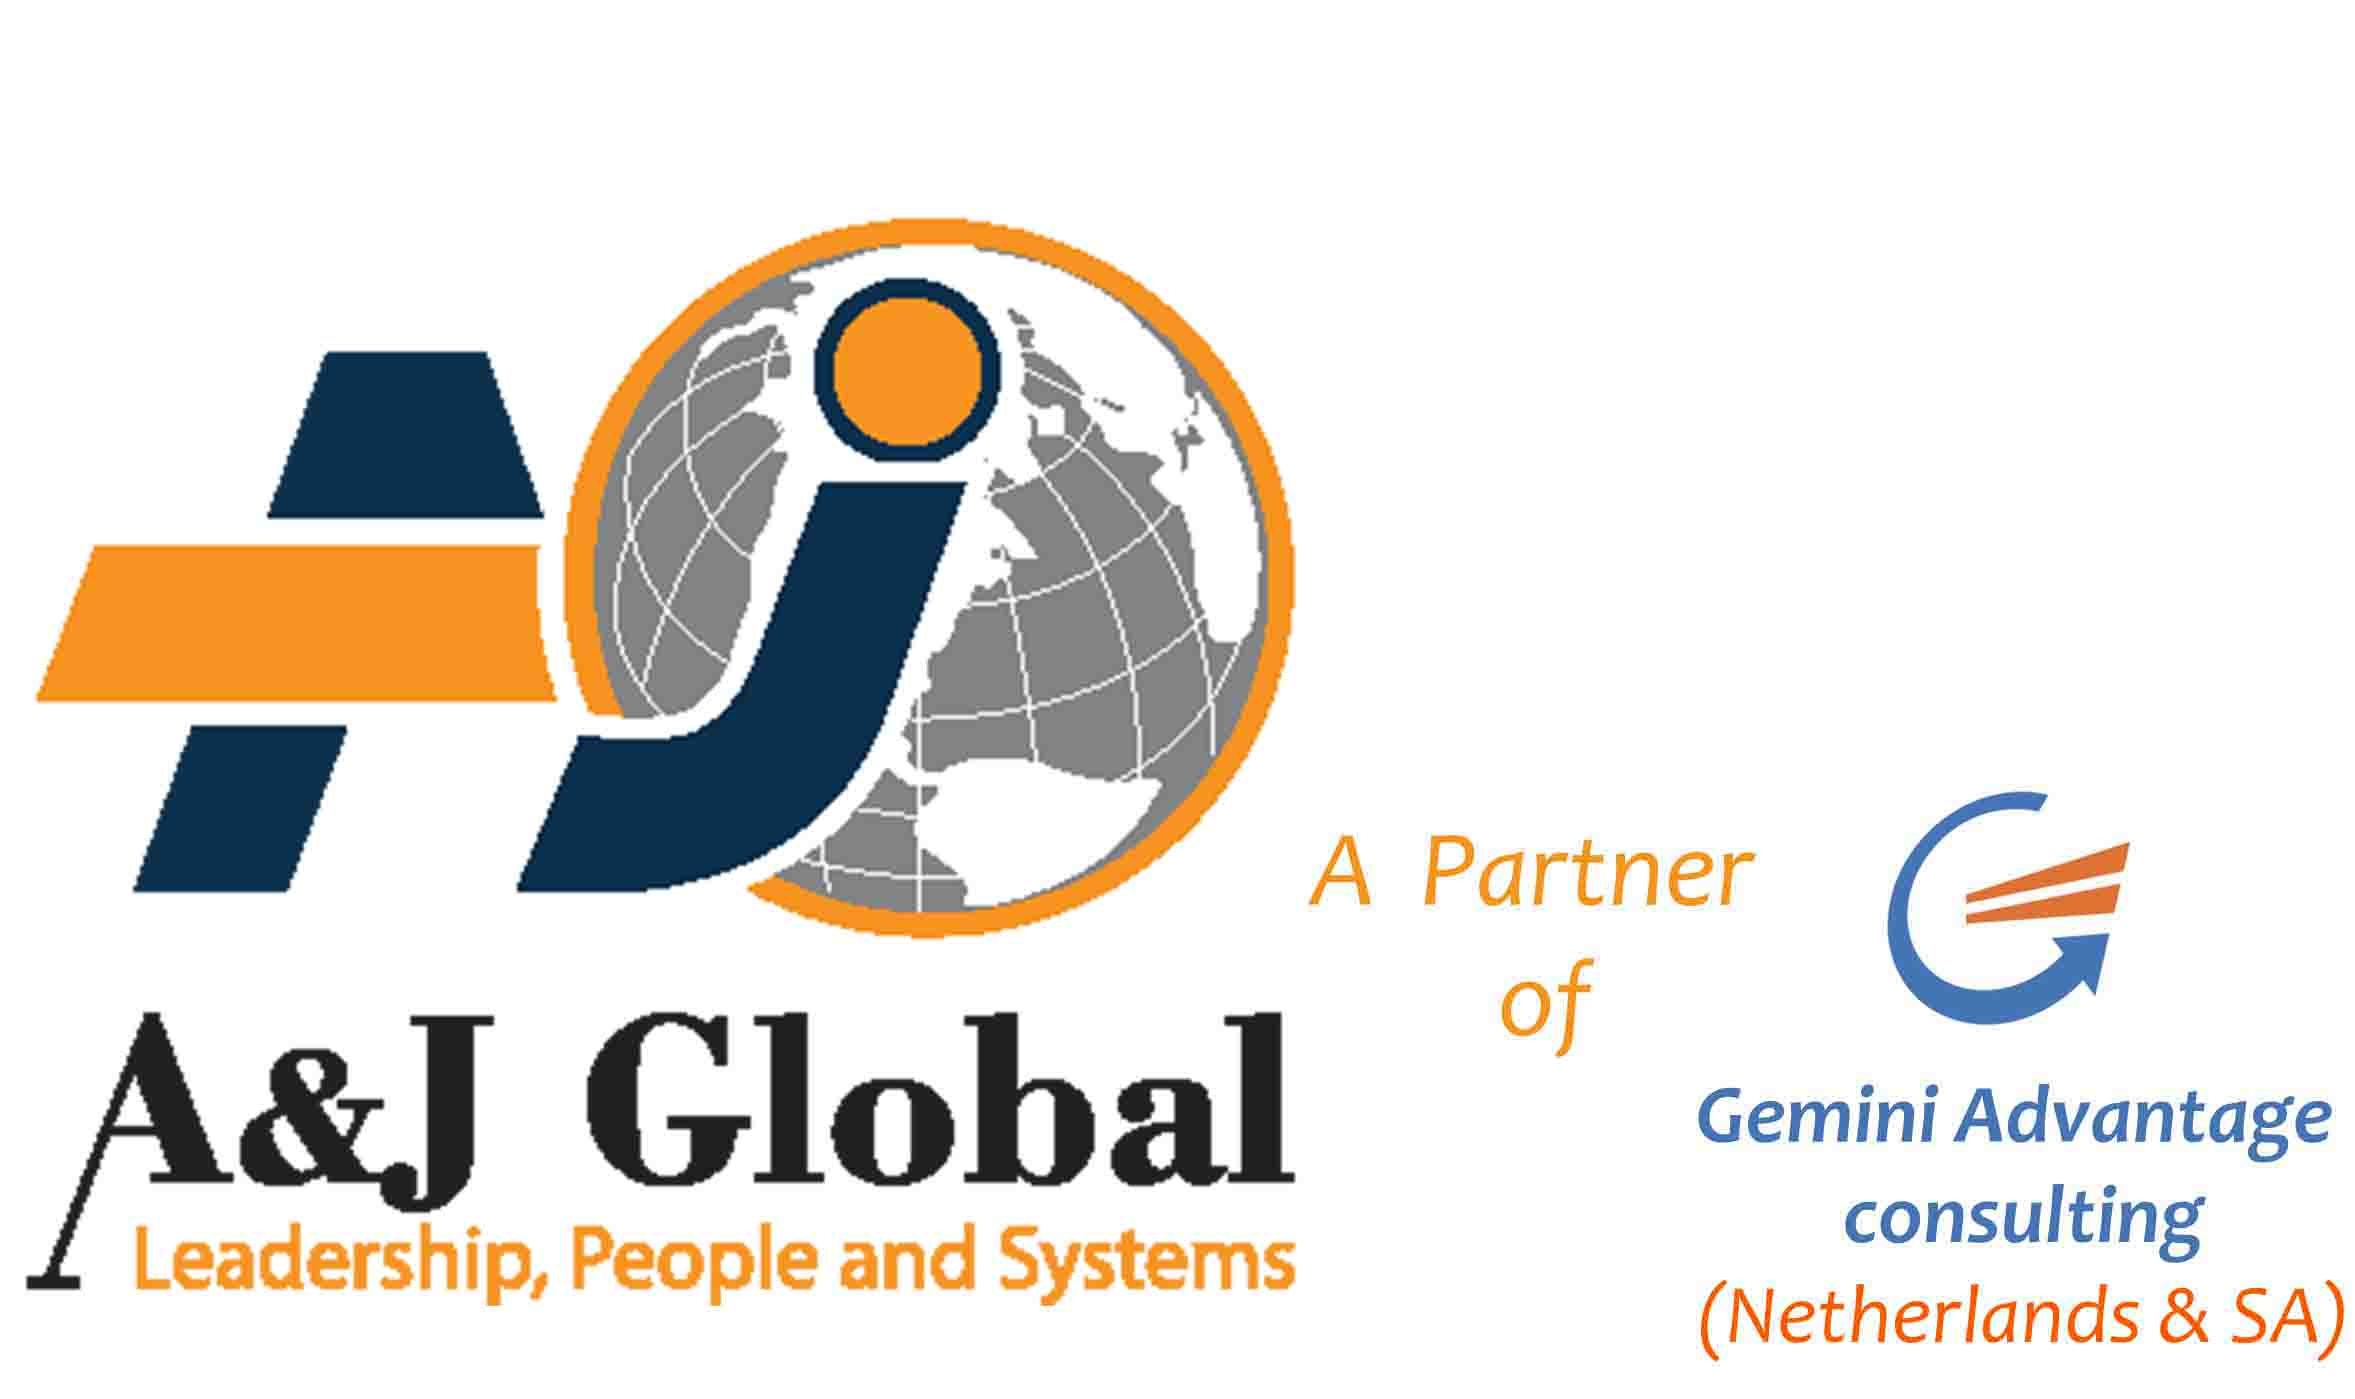 A&J Global Limited